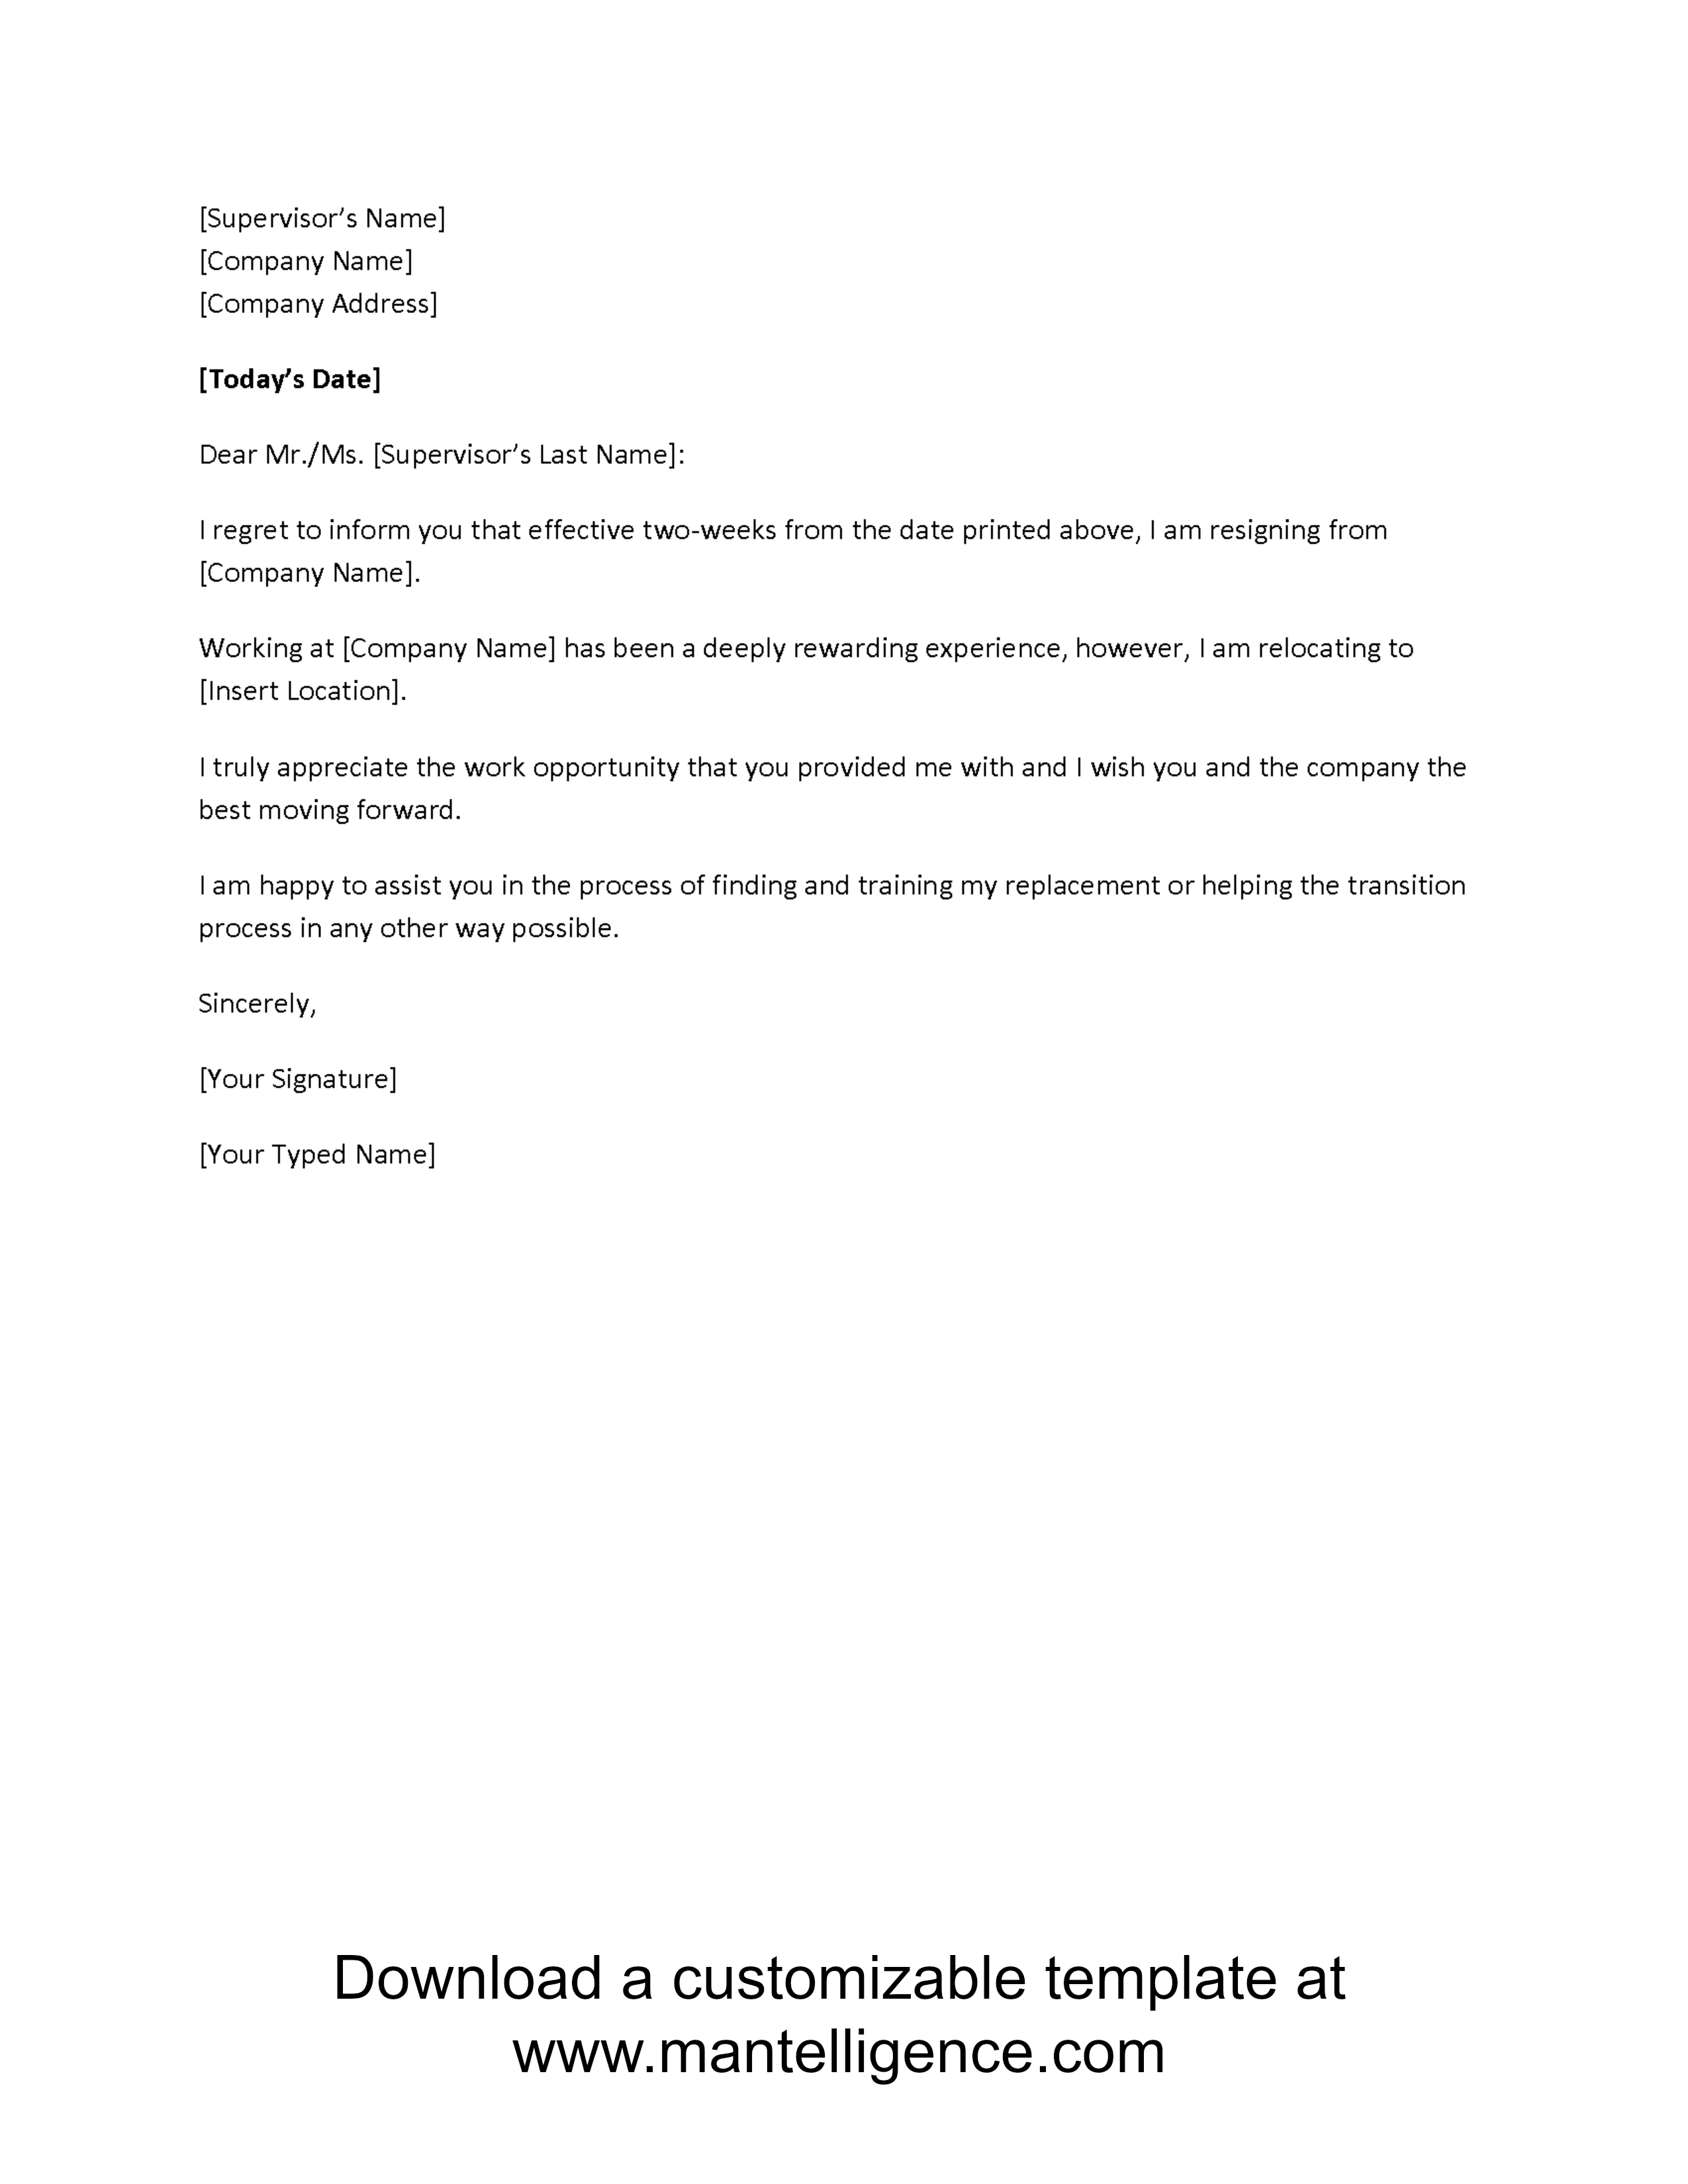 Free Employment Verification Letter Template Download - 3 Highly Professional Two Weeks Notice Letter Templates